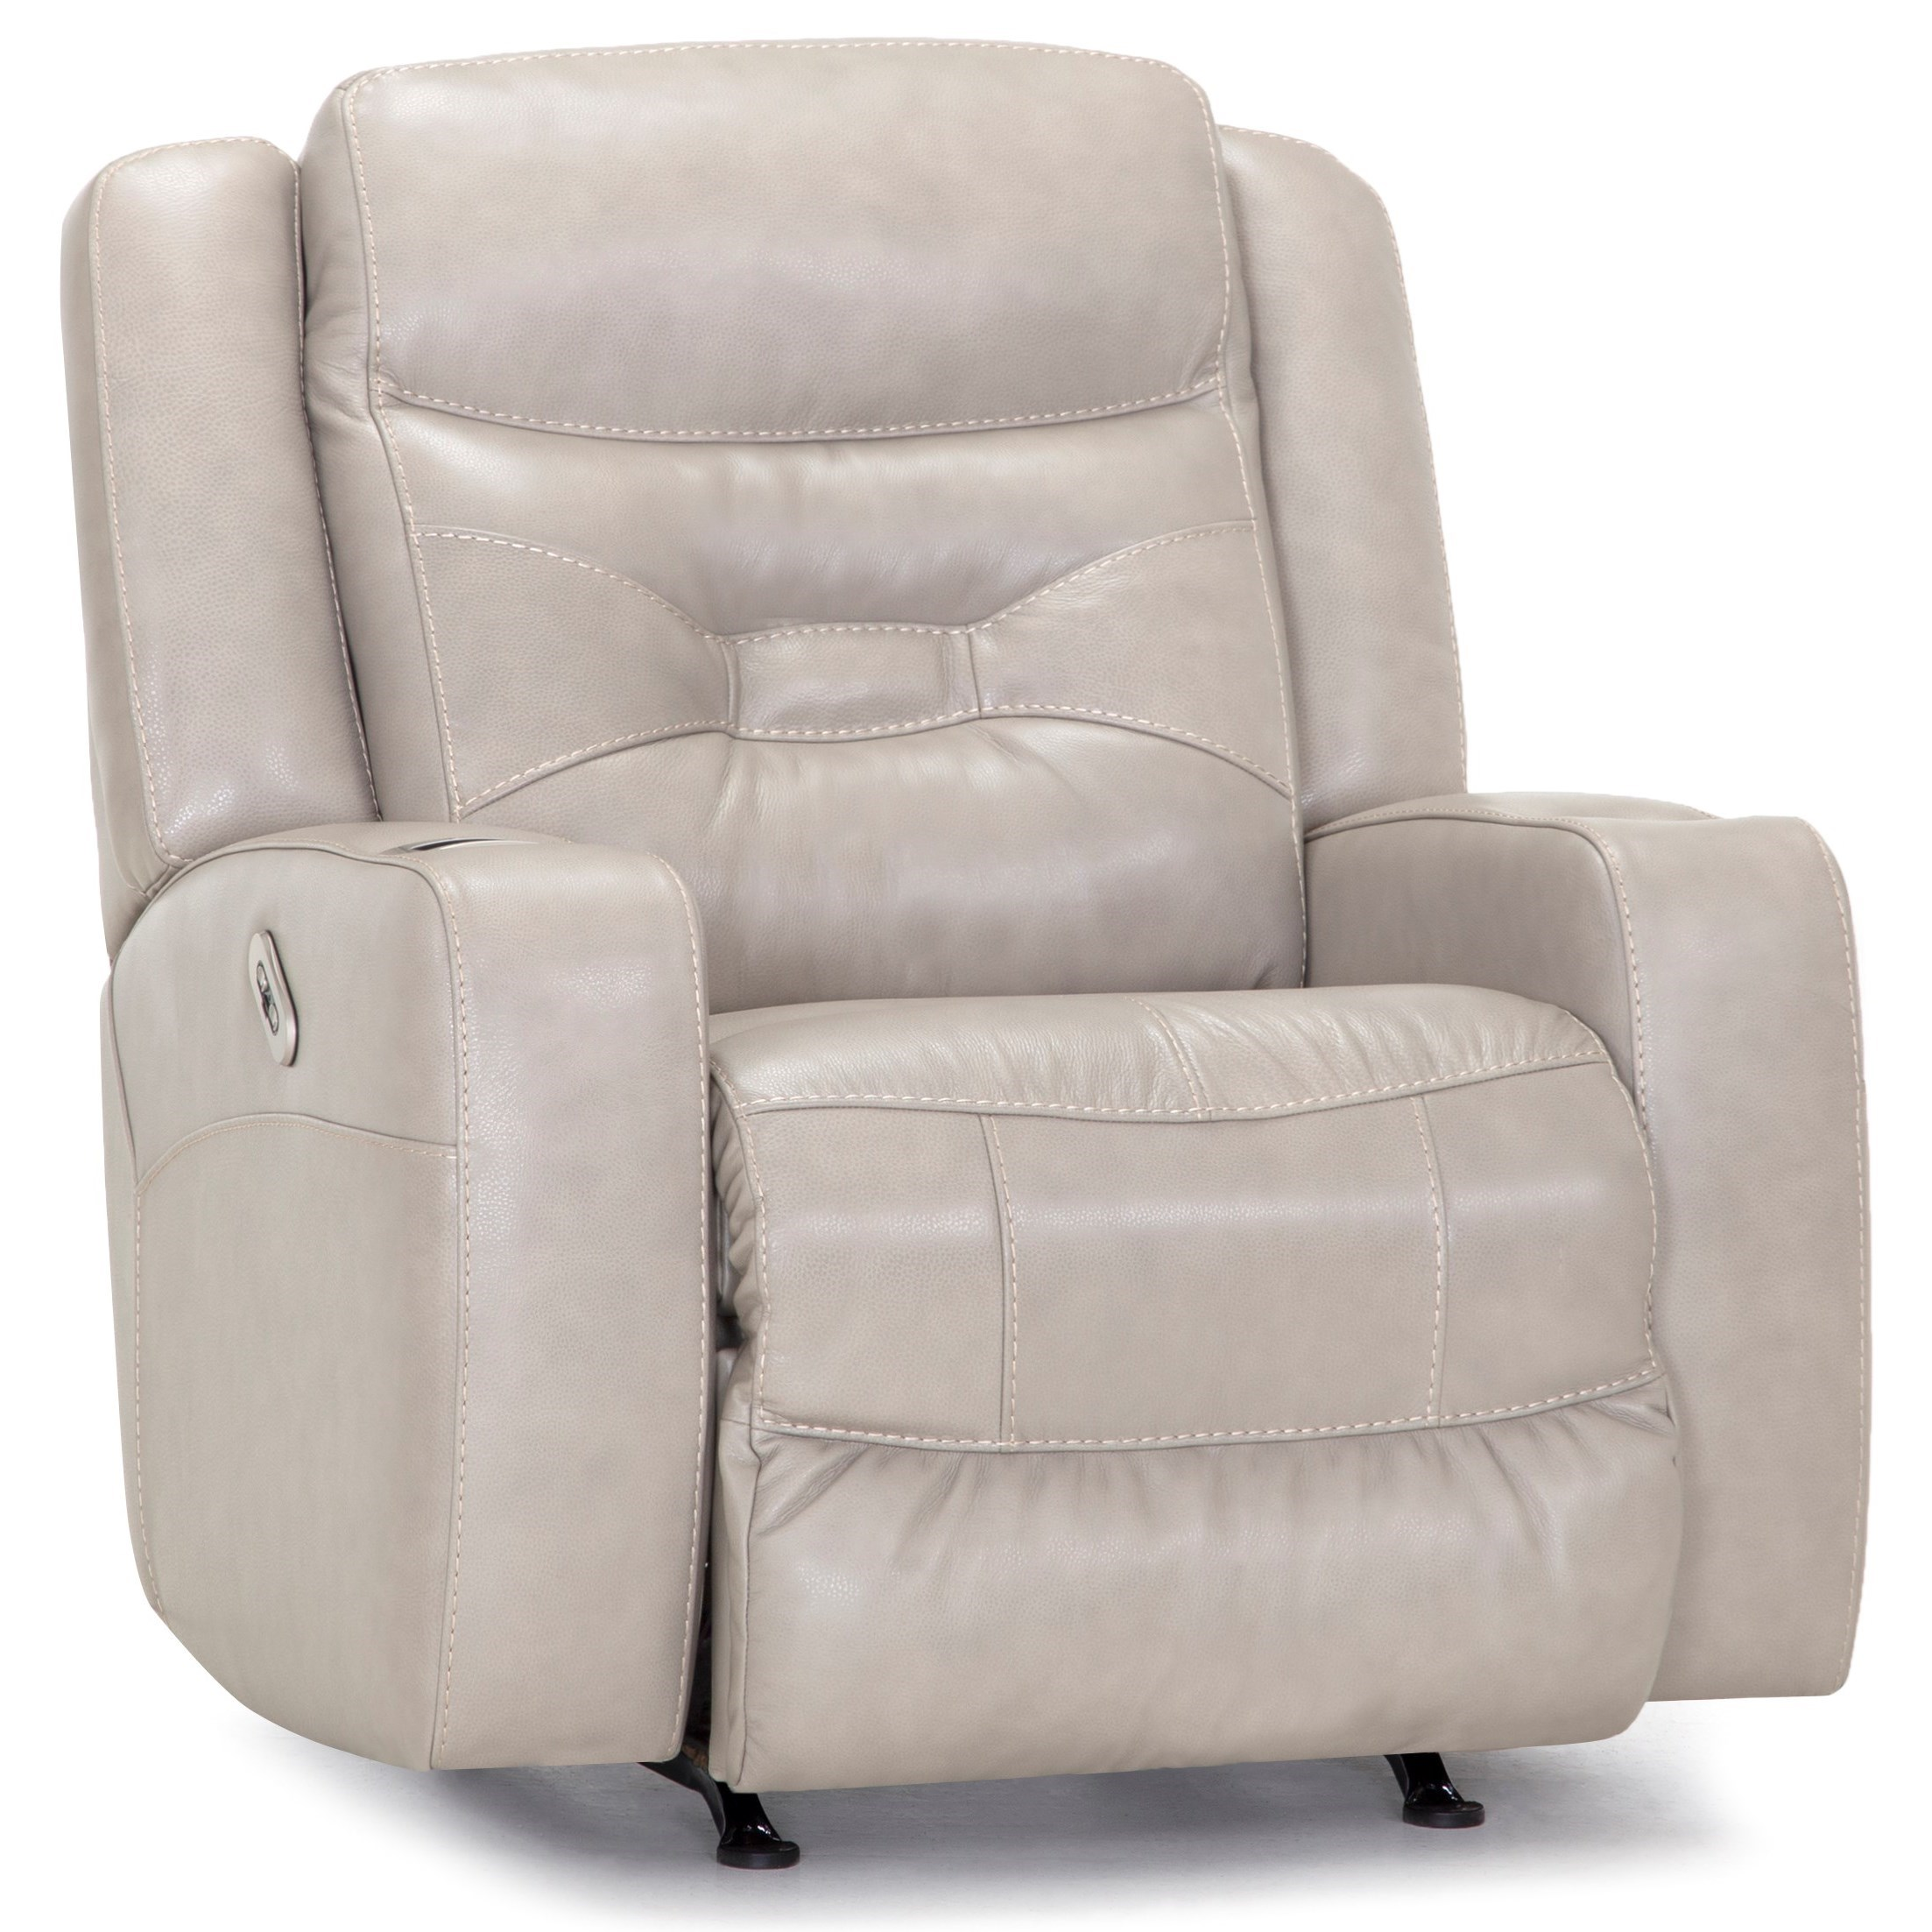 Quantum Dual Power Rocker Recliner with USB Port by Franklin at Catalog Outlet